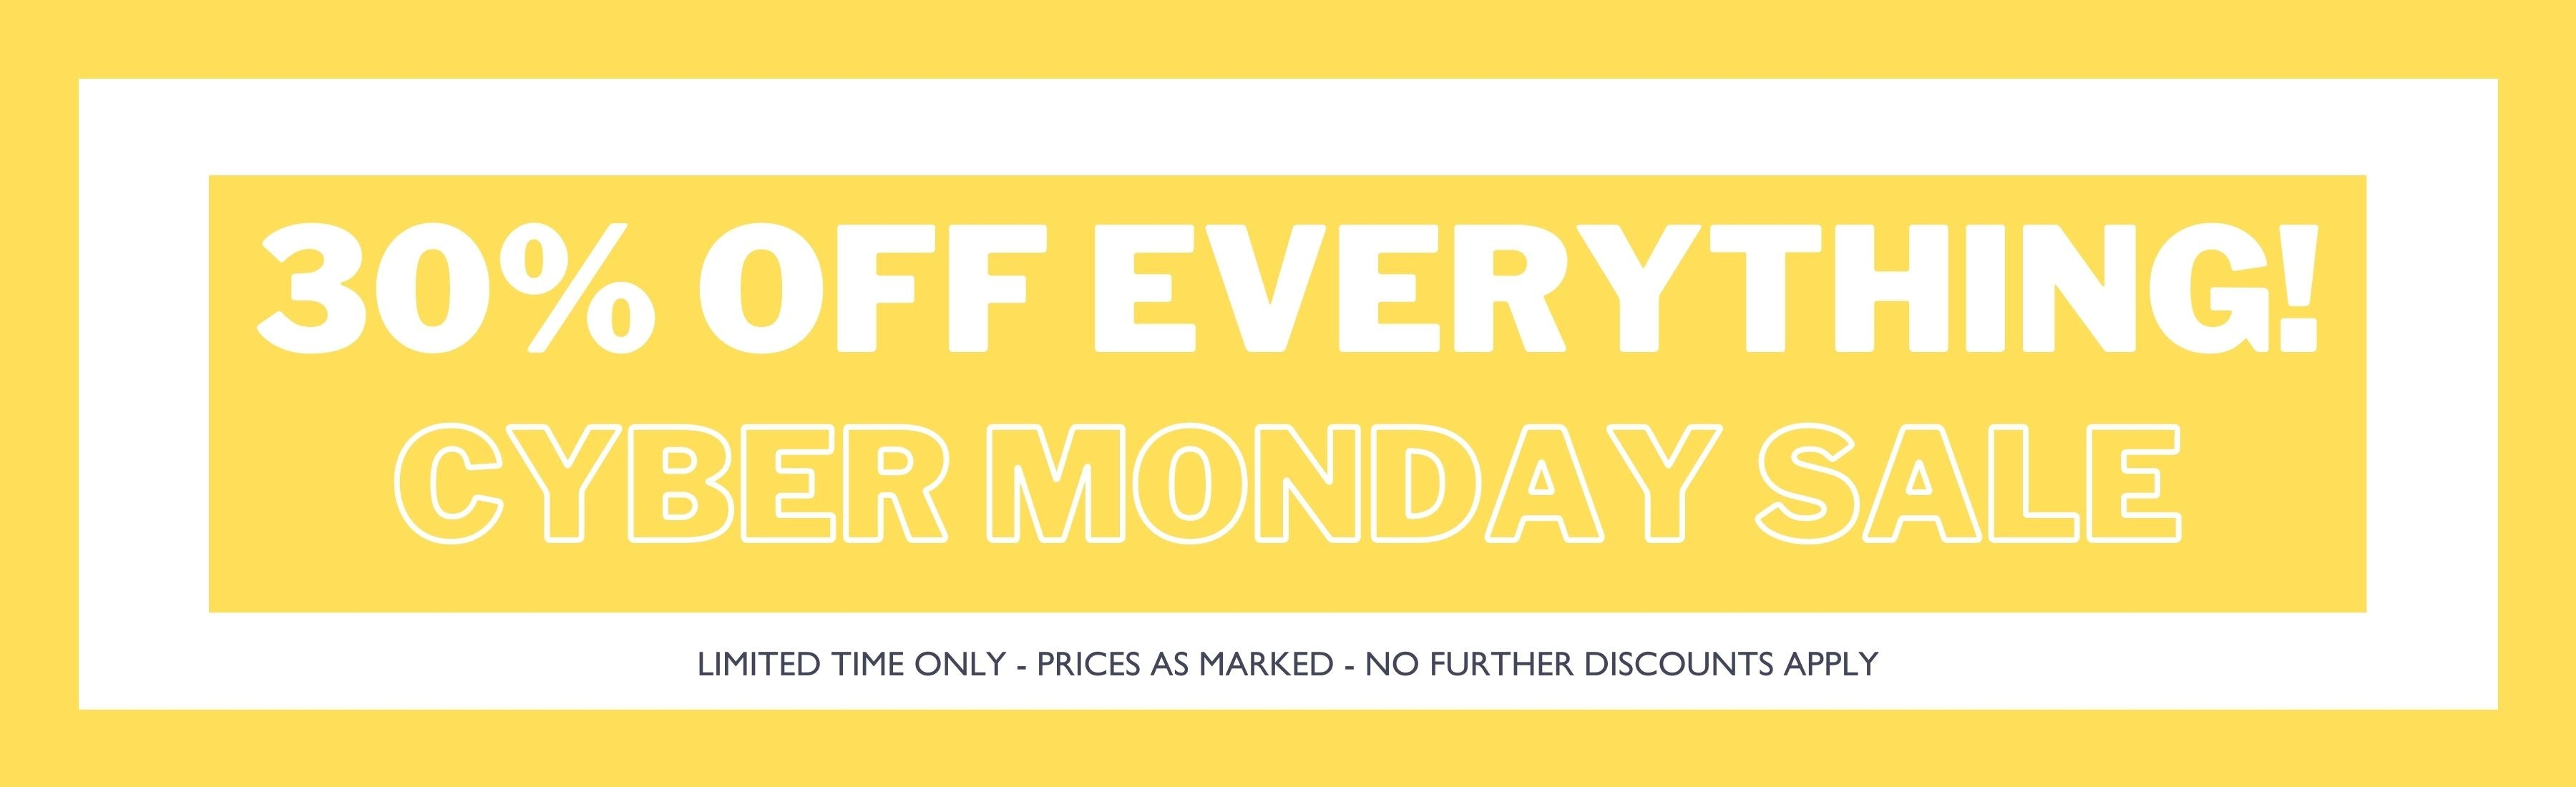 Cyber Monday is on now, 30% OFF EVERYTHING!